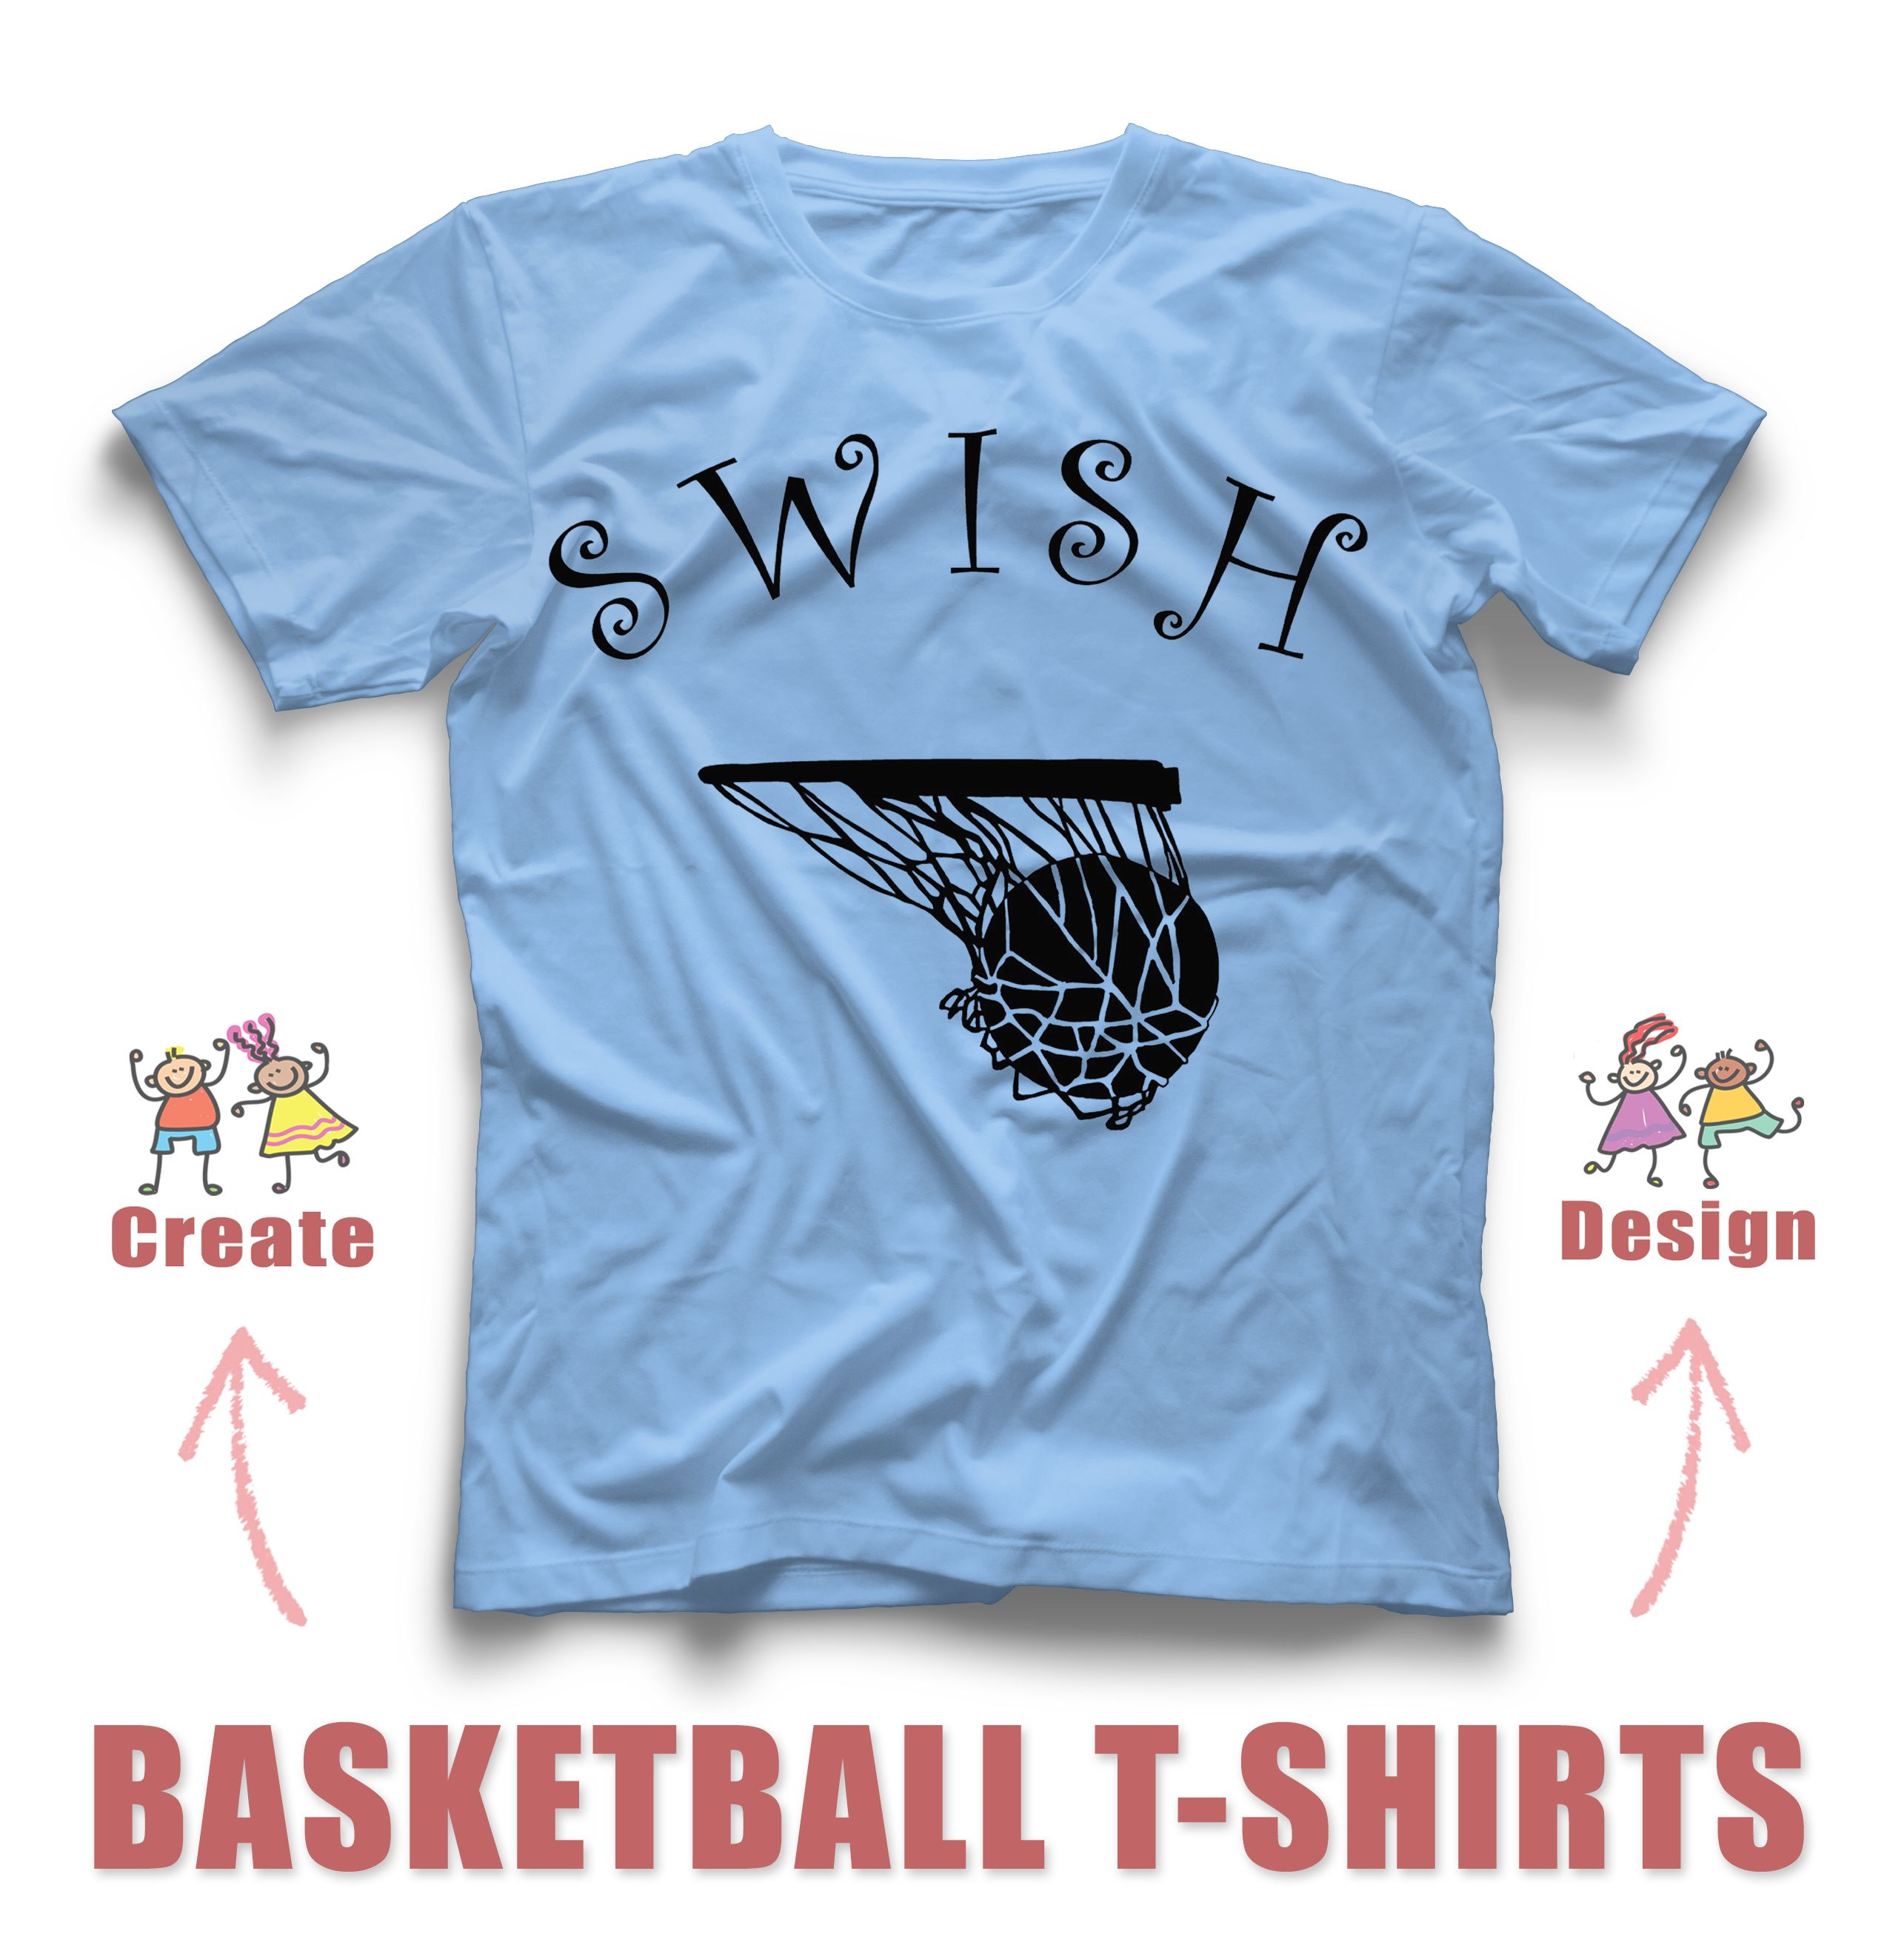 Basketball Custom T Shirt Design Idea Create Online For Free With